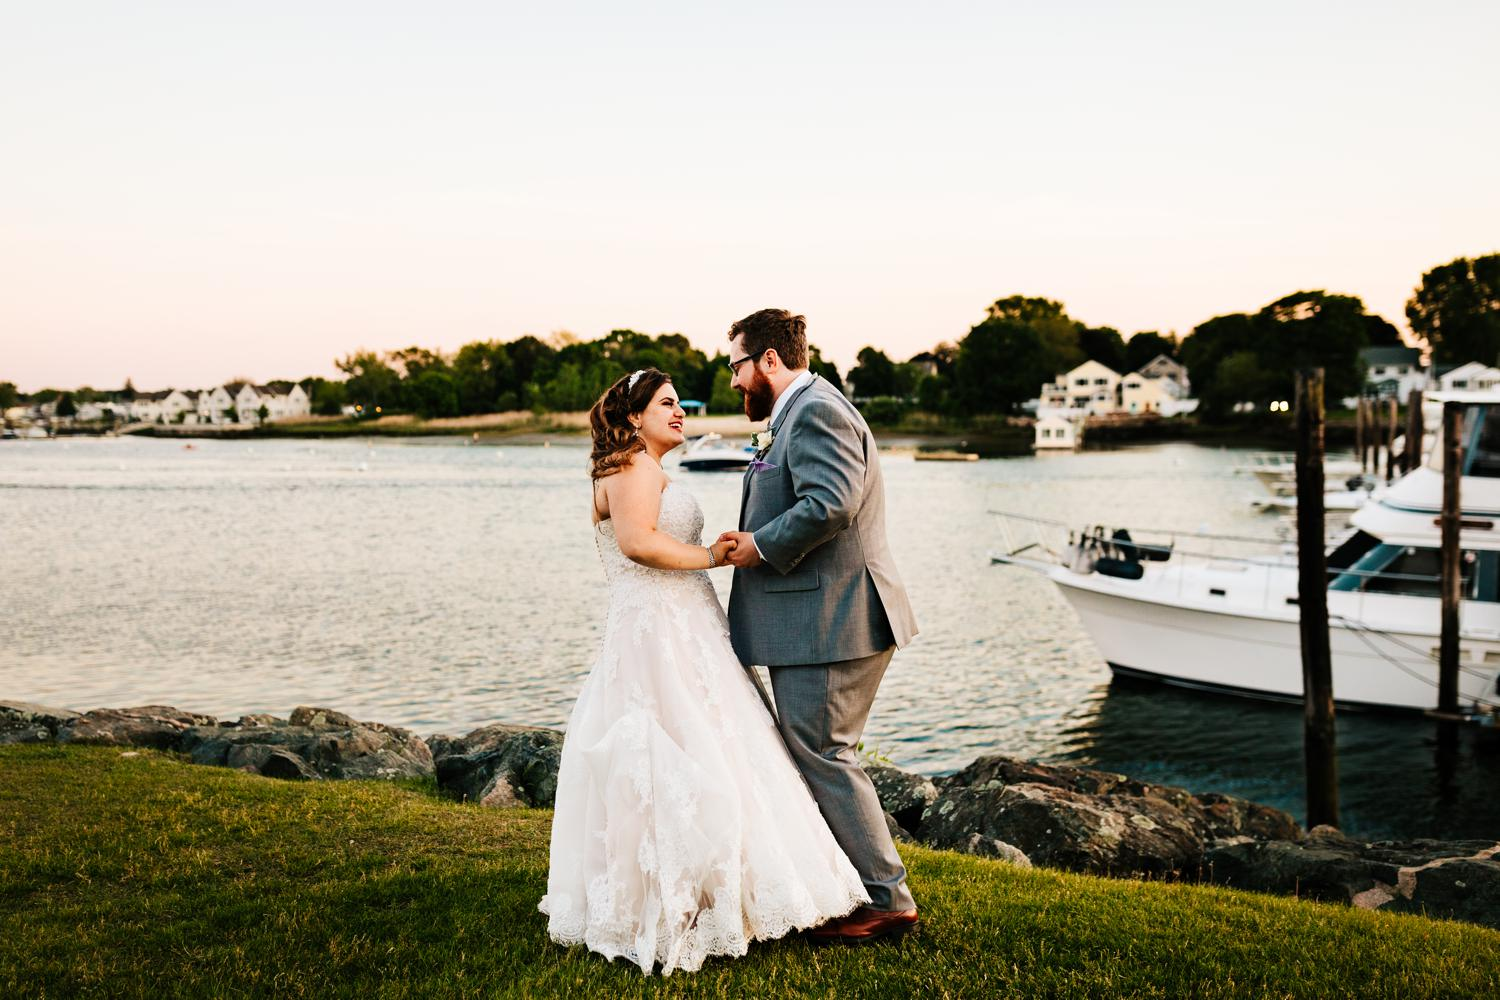 19. danversport-yacht-club-new-england-natural-wedding-photographer-andrea-van-orsouw-photography-fun-albuquerque4.jpg